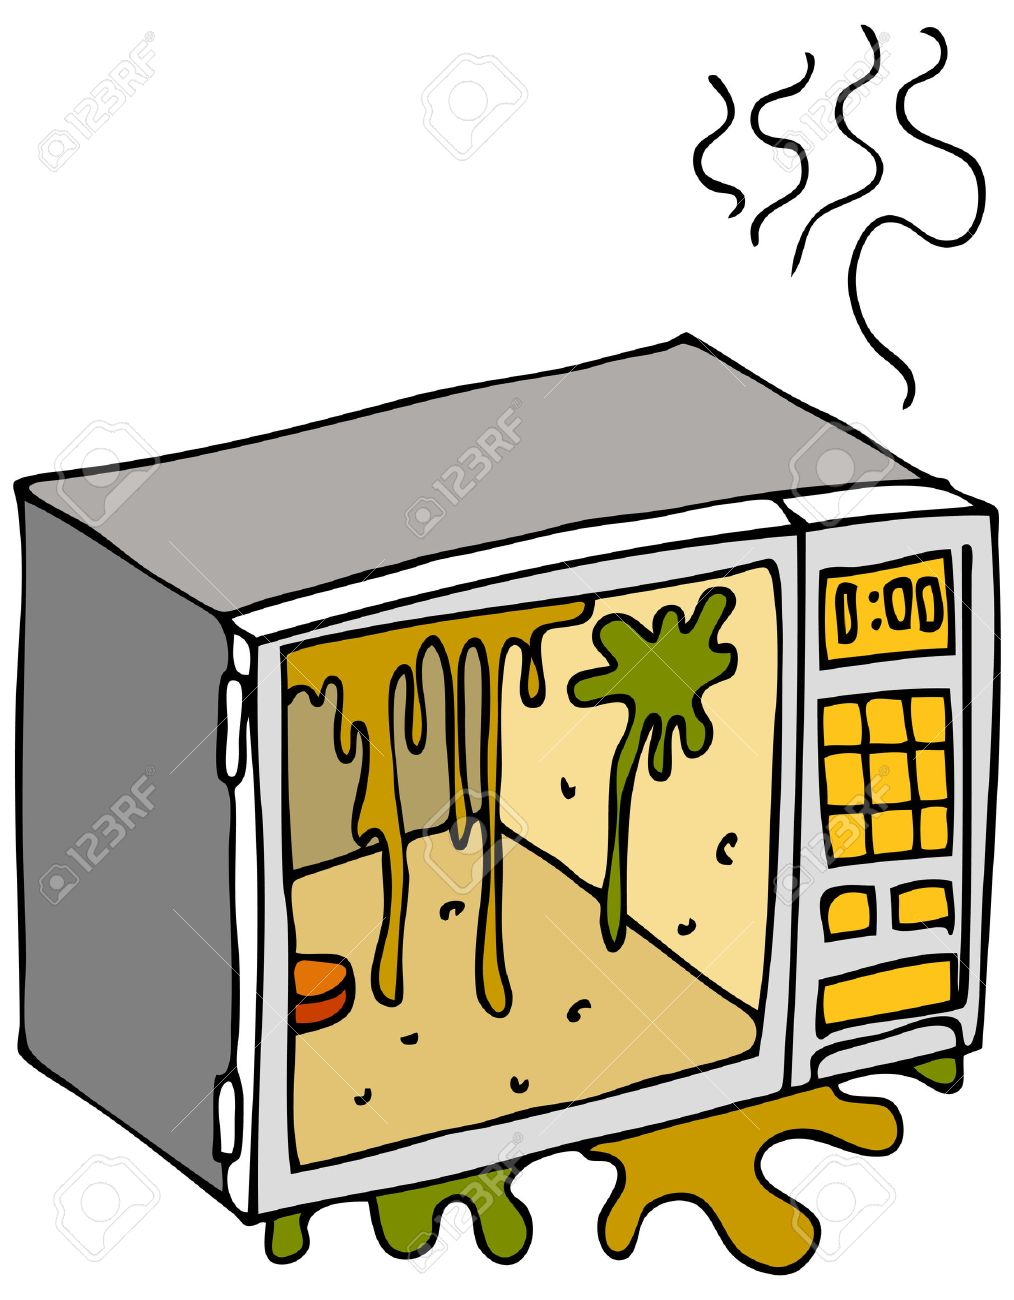 microwave clipart. an image of a dirty microwave oven. stock vector - 8525364 clipart